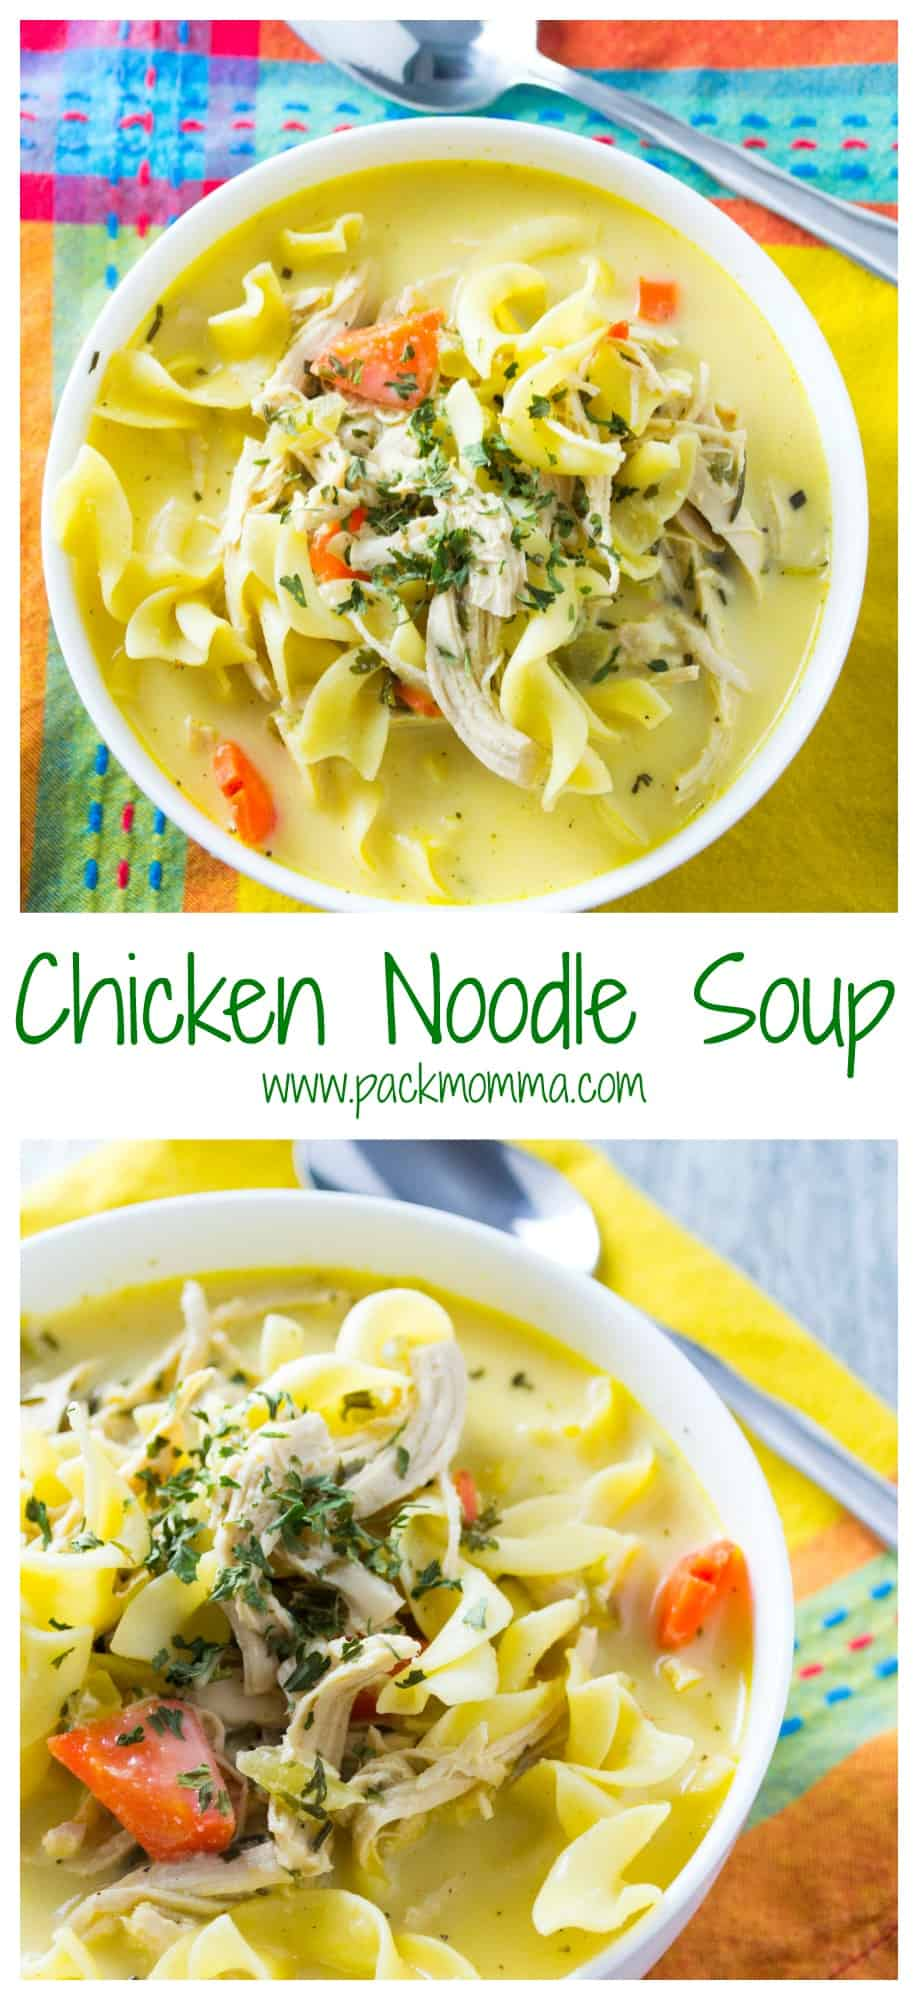 Easy Homemade Chicken Noodle Soup | This Easy Homemade Chicken Noodle Soupis definitely not the can of soup from your childhood. Hearty, creamy and nutritious, this soup will make being a grown up worth it! | Pack Momma | https://www.awickedwhisk.com